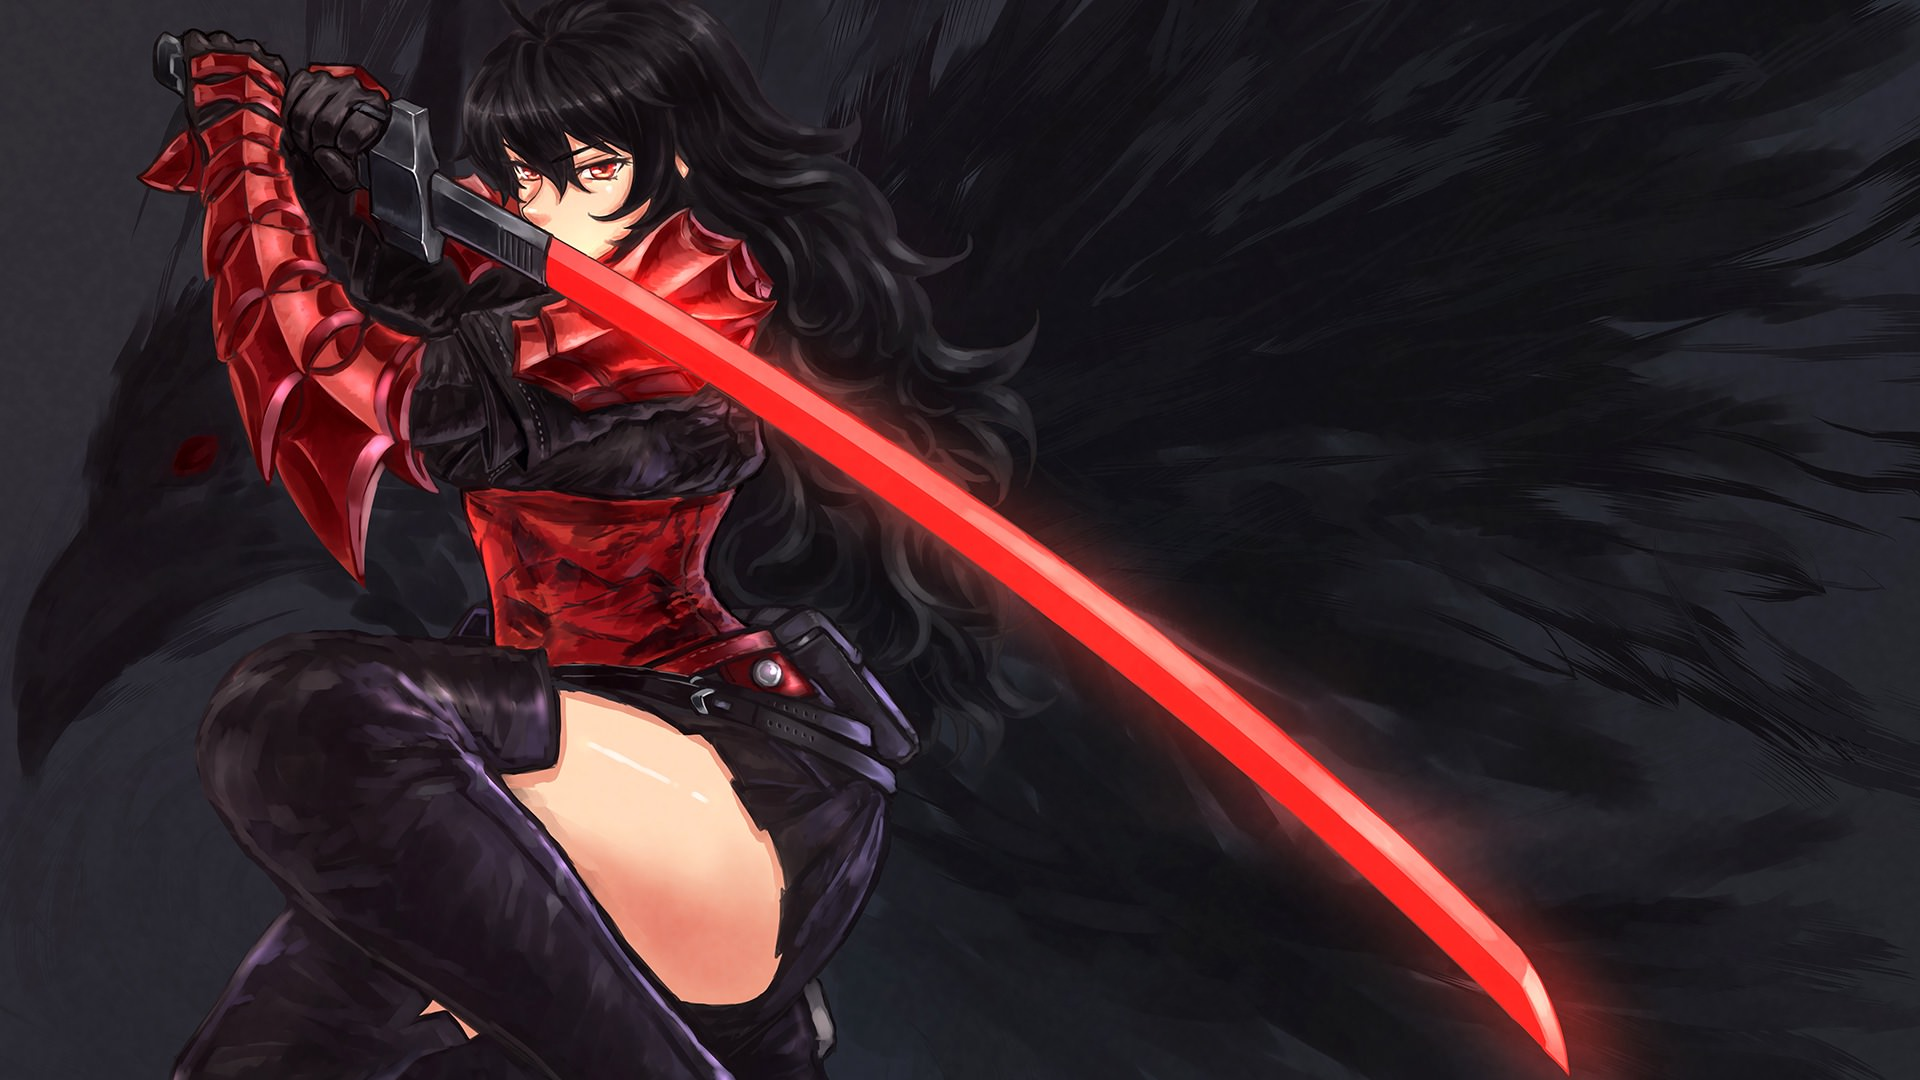 Download 780 Koleksi Wallpaper Hd Anime Girl Katana HD Terbaik